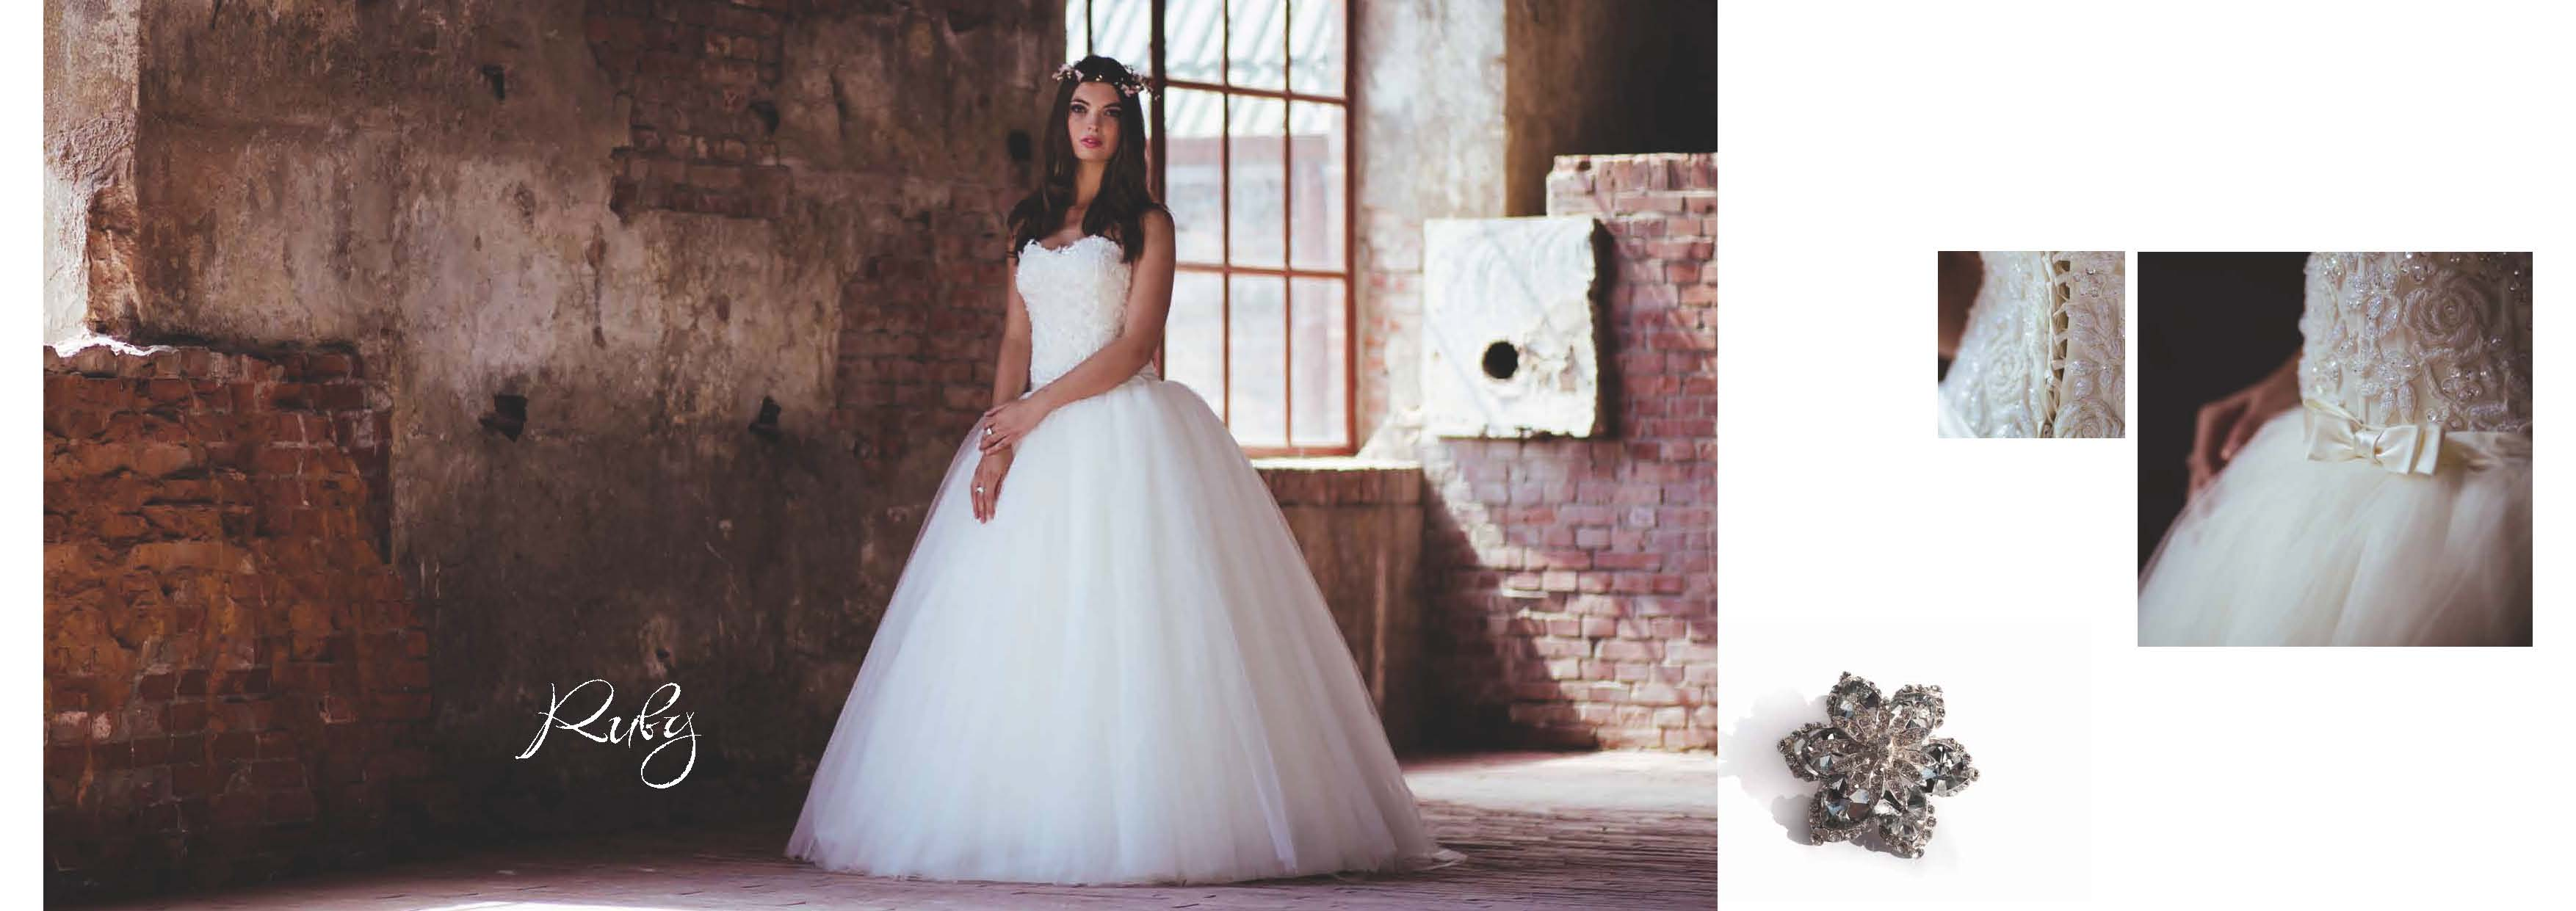 Izmir Bridal new collection - Crystalline_Page_05